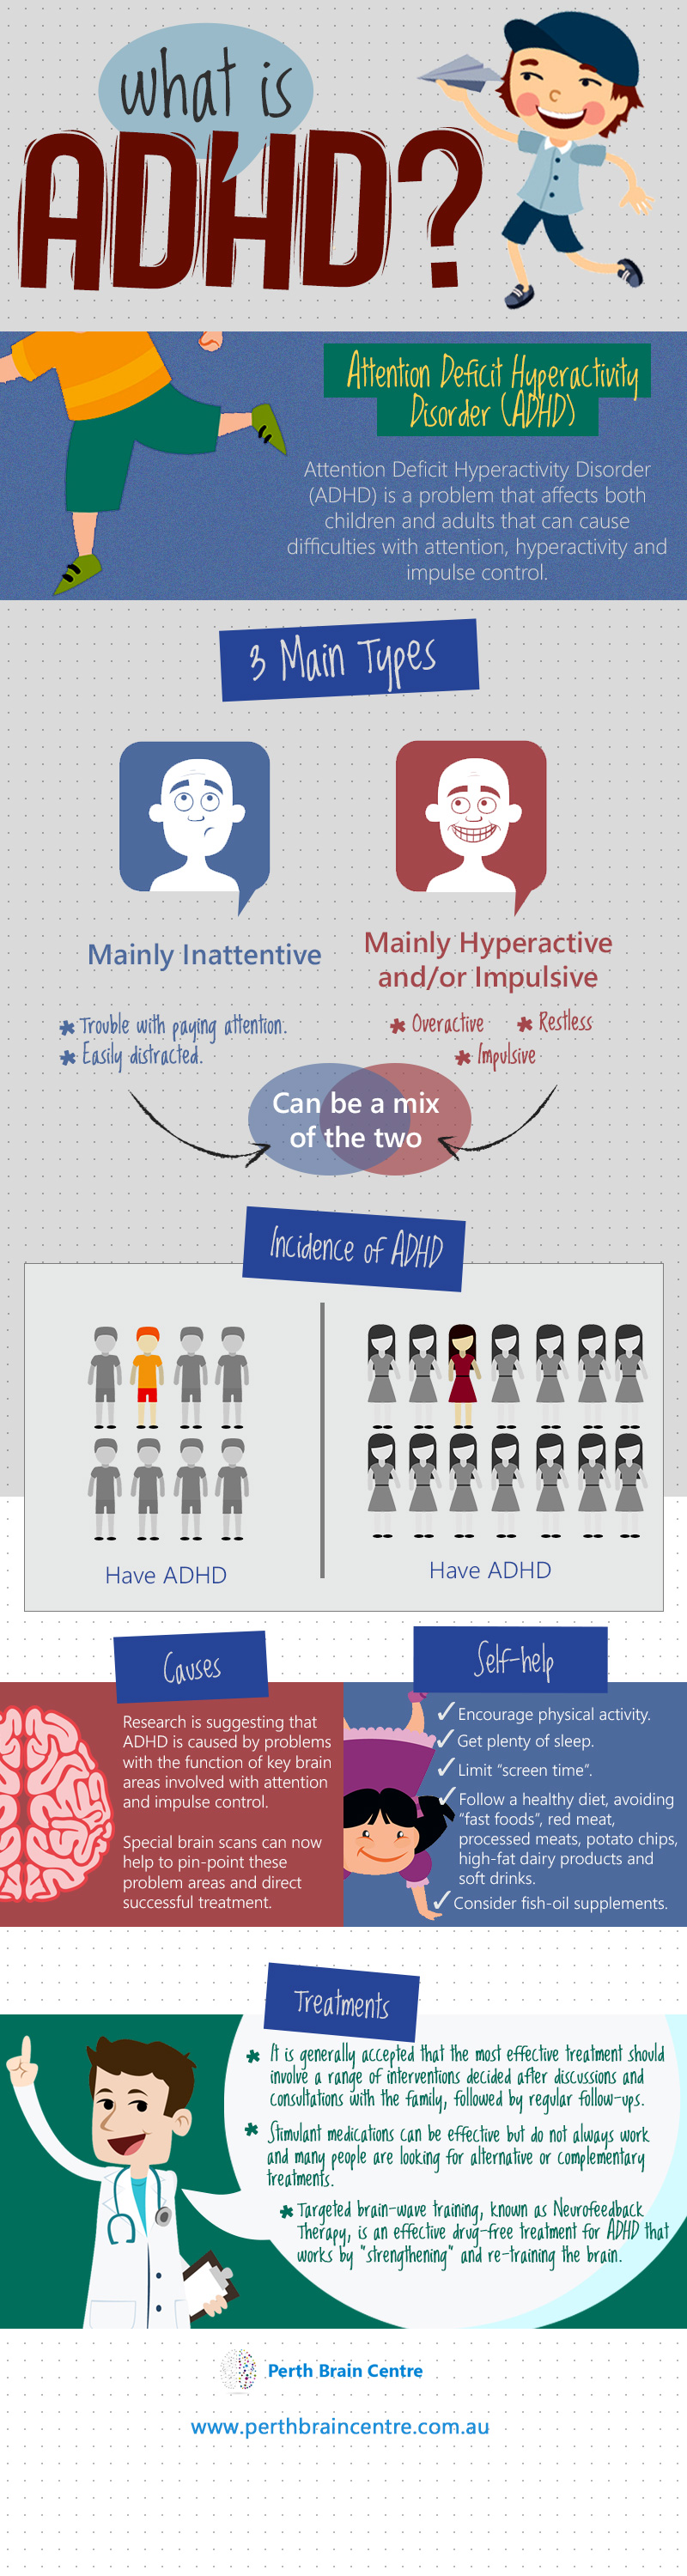 adhd_infographic_perth_brain_centre.jpg